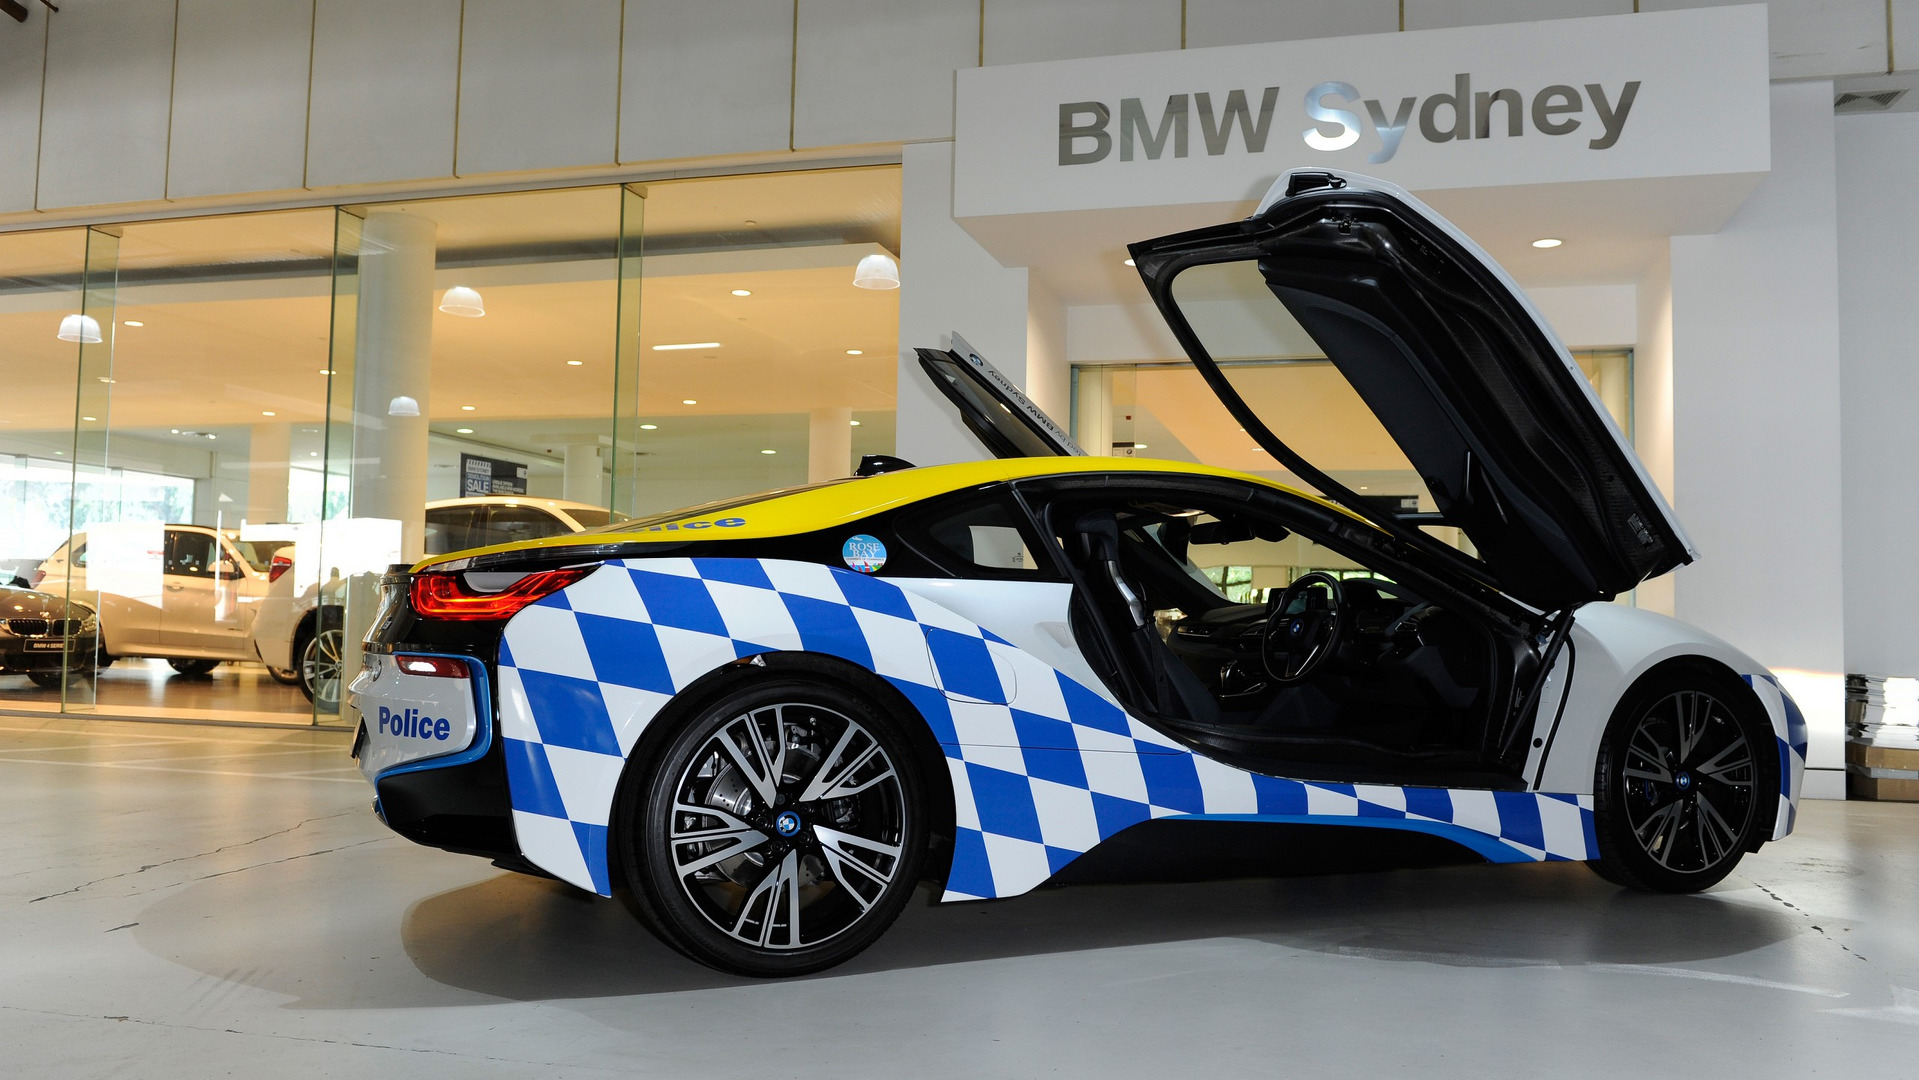 BMW I Police Car Would Be Suitable For Demolition Man Sequel - A bmw i8